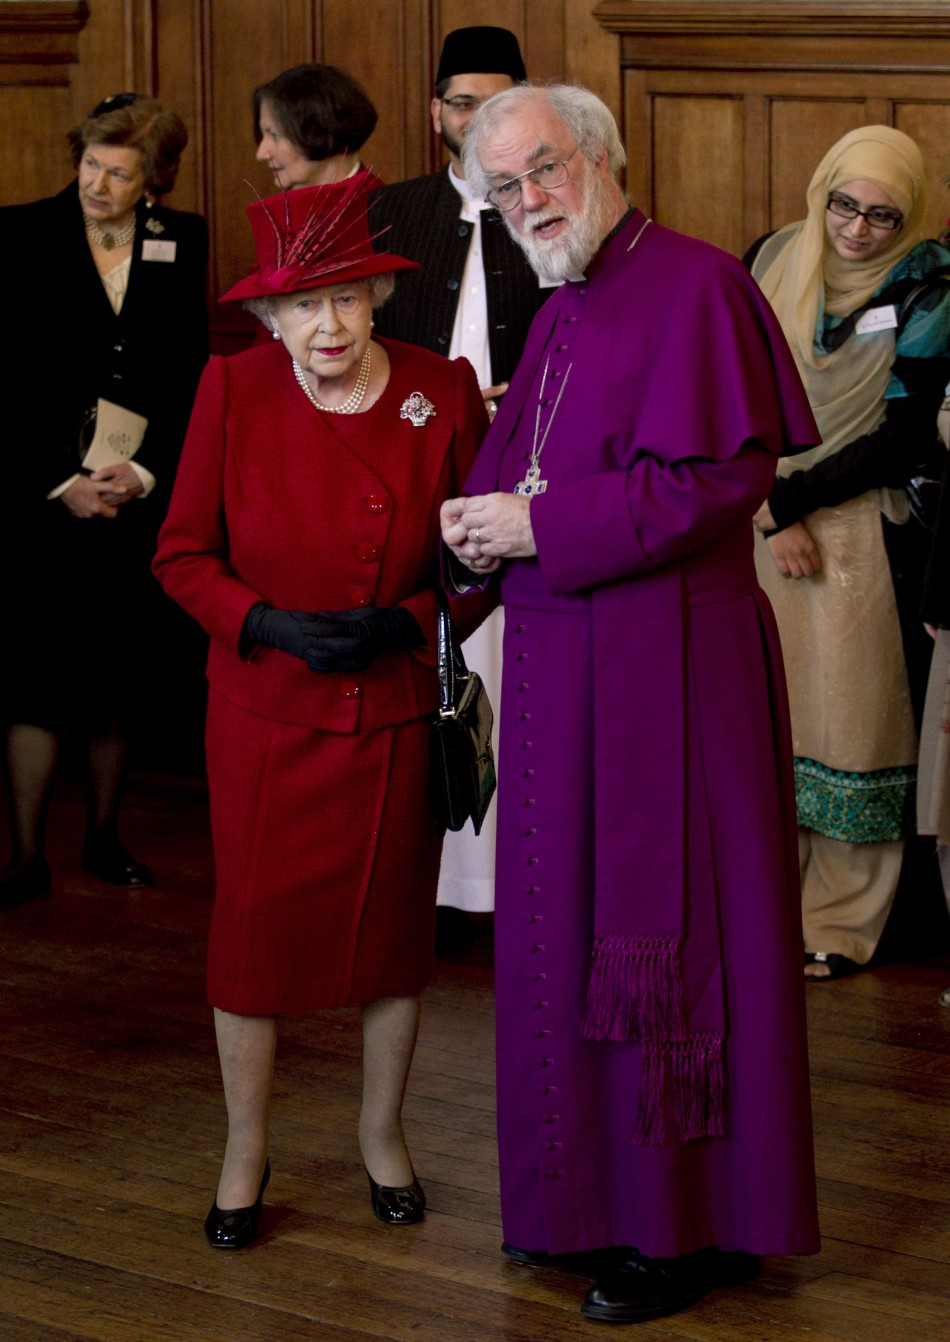 Britain's Queen Elizabeth speaks with the Archbishop of Canterbury, Rowan Williams during a multi-faith reception to mark the Queen's Diamond Jubilee at Lambeth Palace in London February 15, 2012.